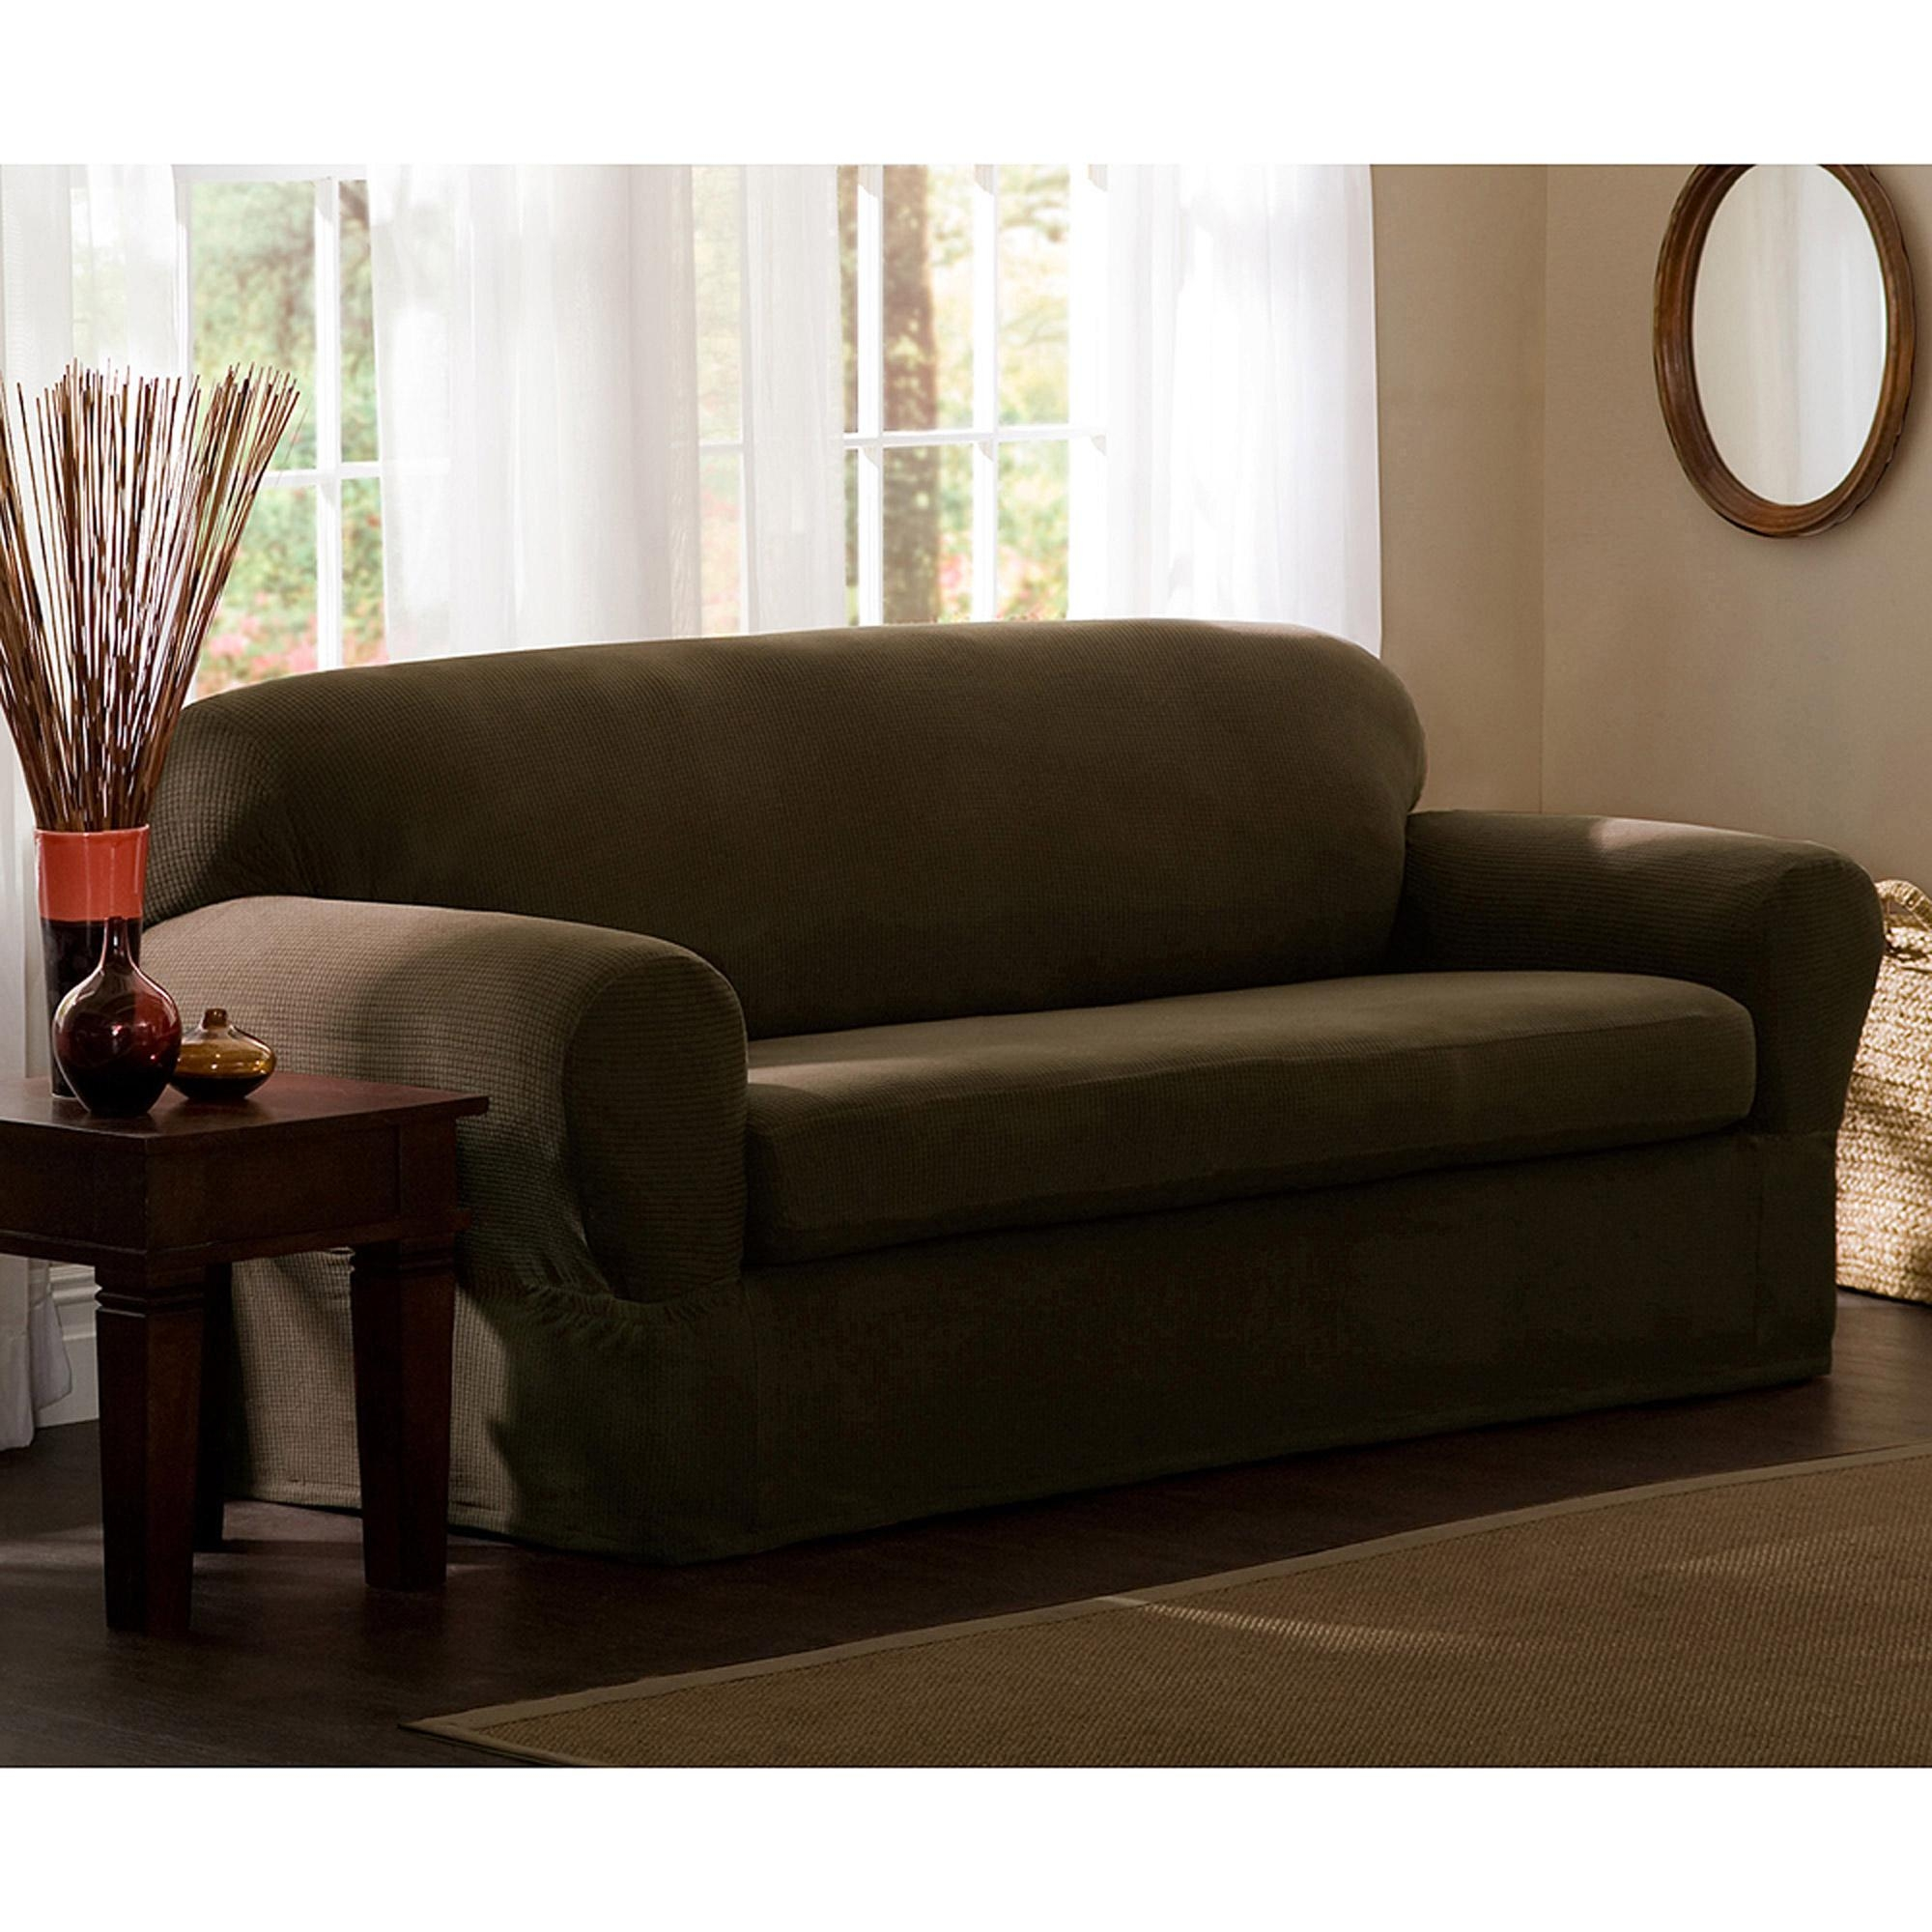 Furniture: Sofa Covers Walmart | Walmart Couch Covers | Slip Within Covers For Sofas (Image 12 of 20)